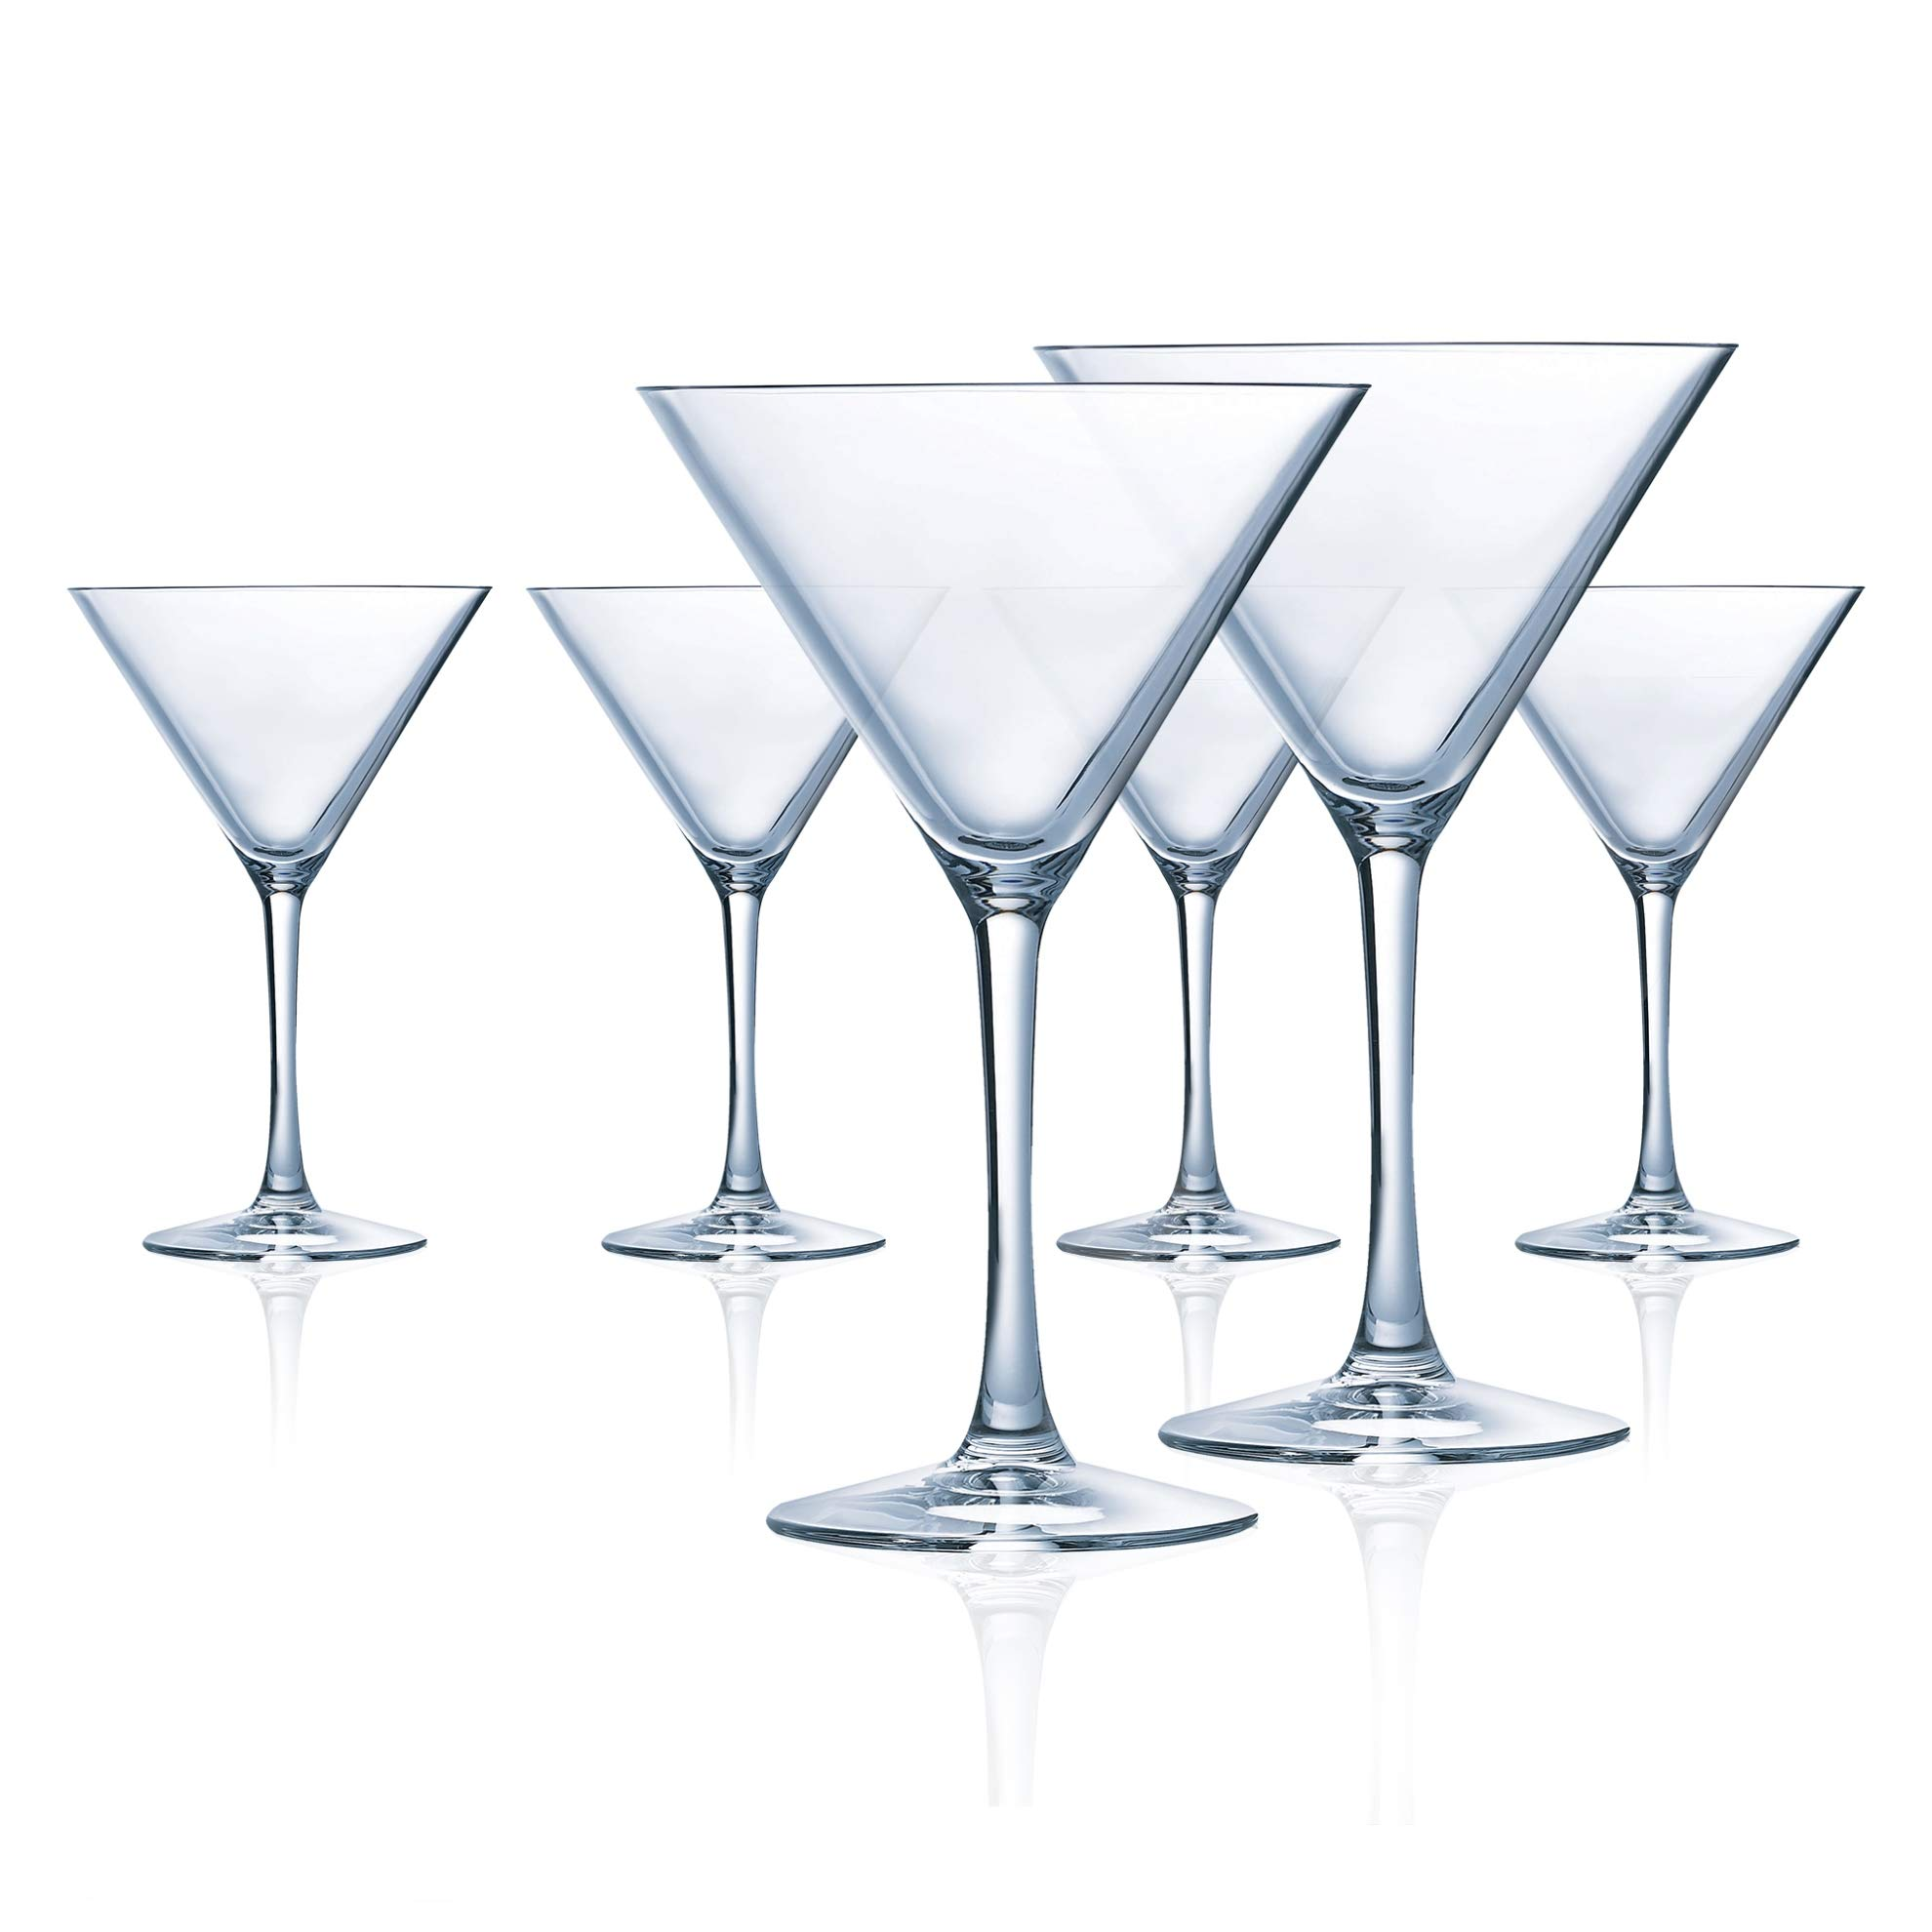 Chef & Sommelier L9225 Grand Vin 10.25 Ounce Martini, Set of 6, 10.25 oz, Clear by Chef&Sommelier